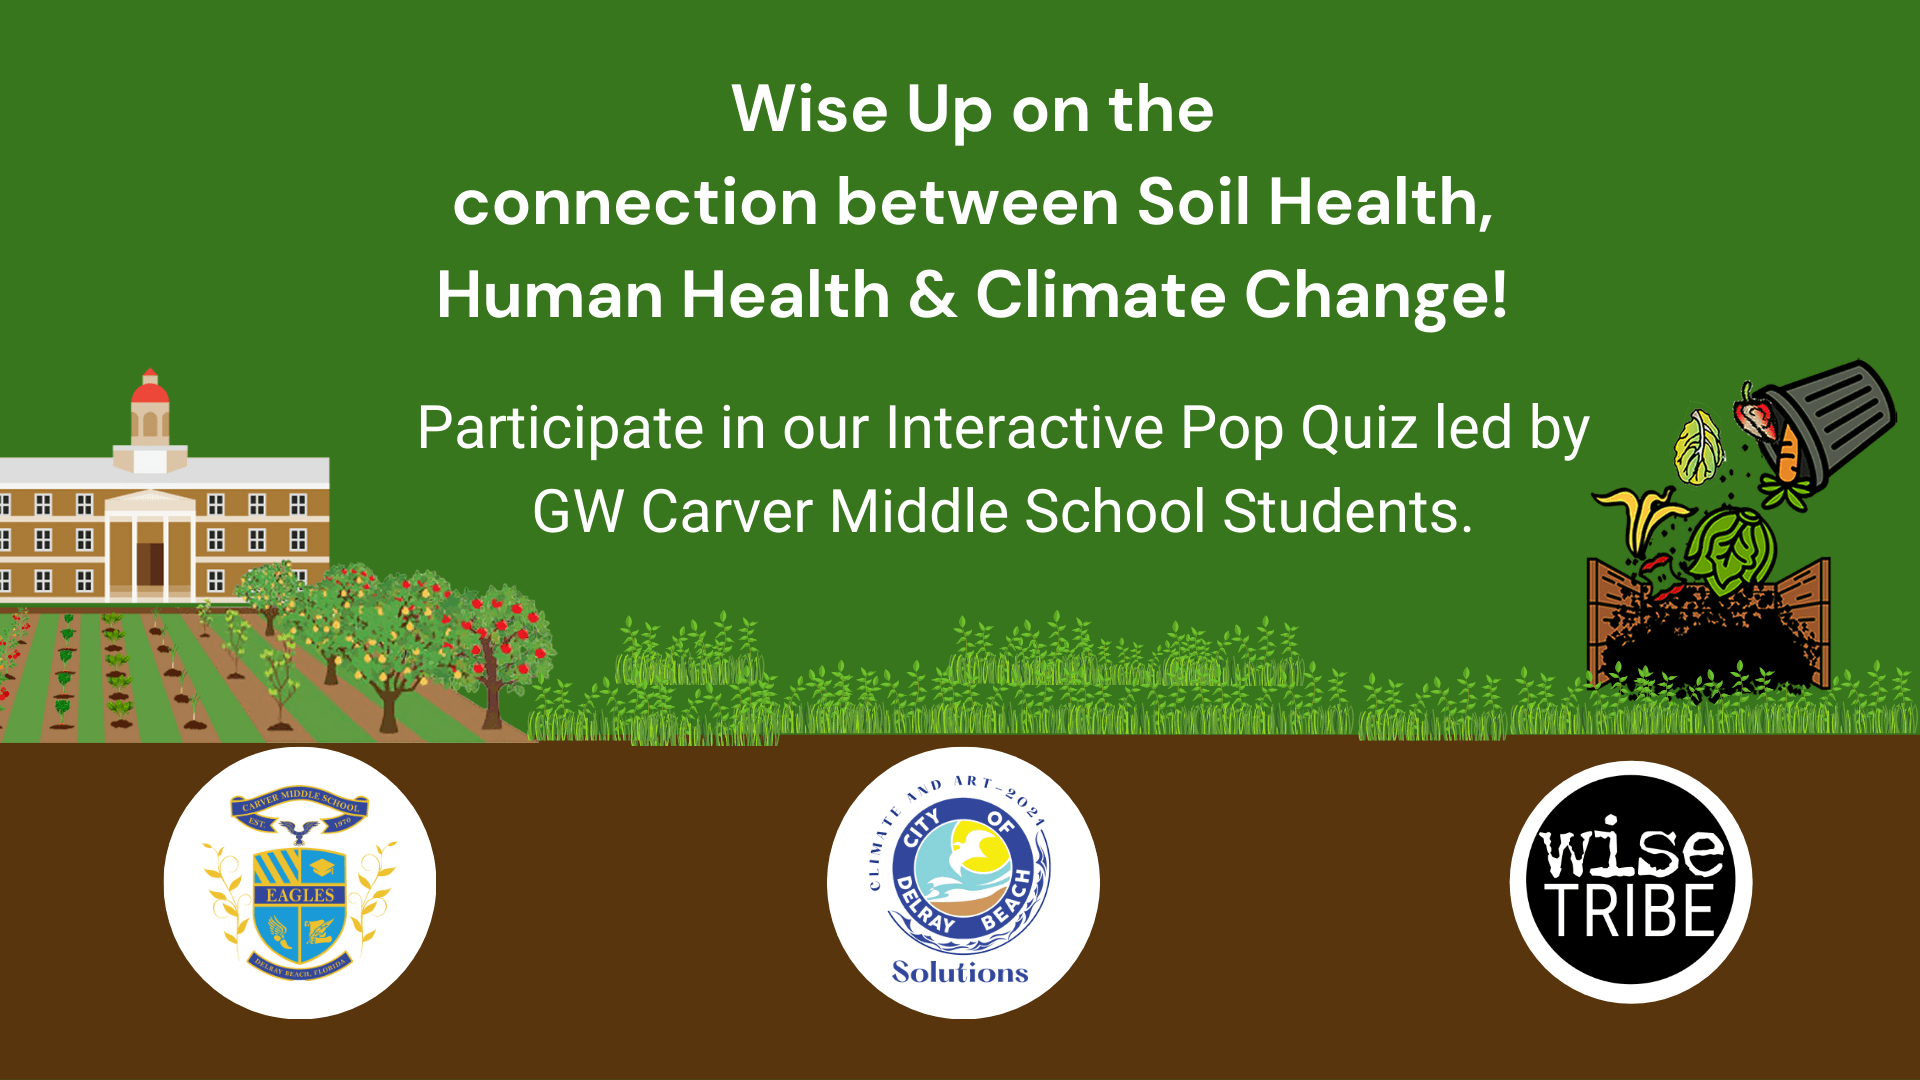 Youth led game show on Soil & Climate Change